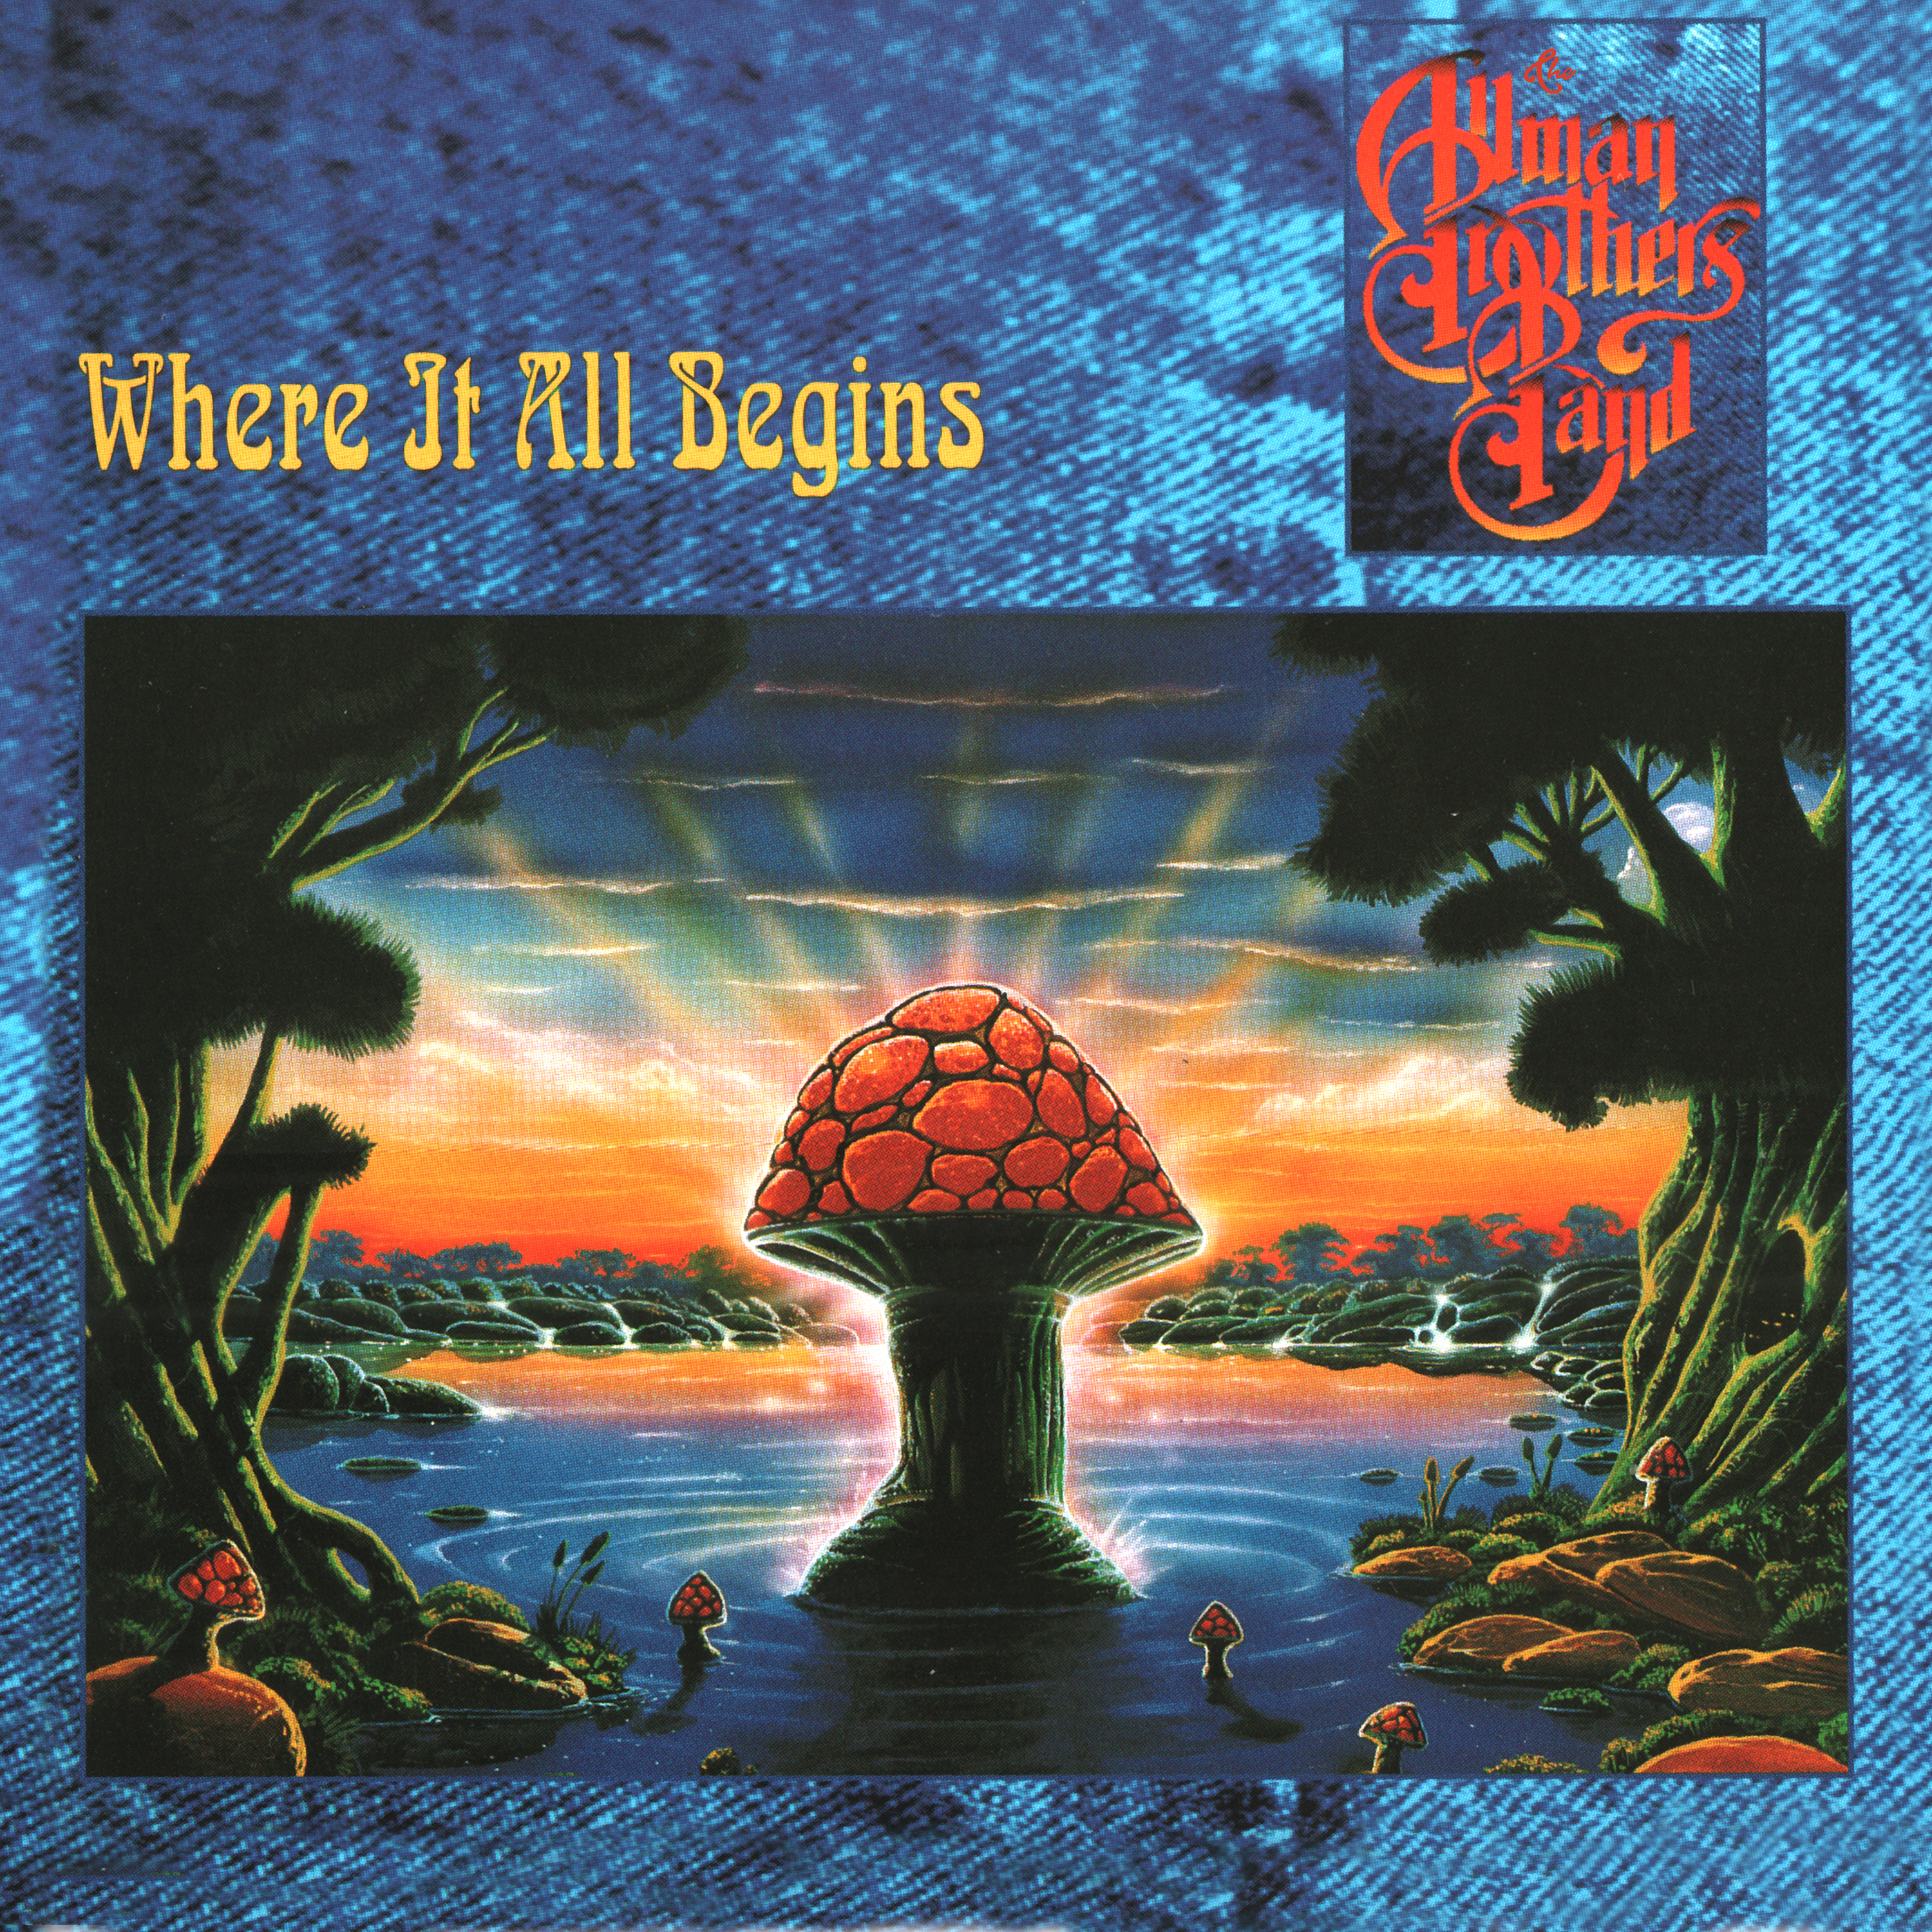 The Allman Brothers Band - Where It All Begins (180 Gram Translucent Gold & Red Swirl Audiophile Vinyl/Limited Edition/Gatefold Cover & Poster)